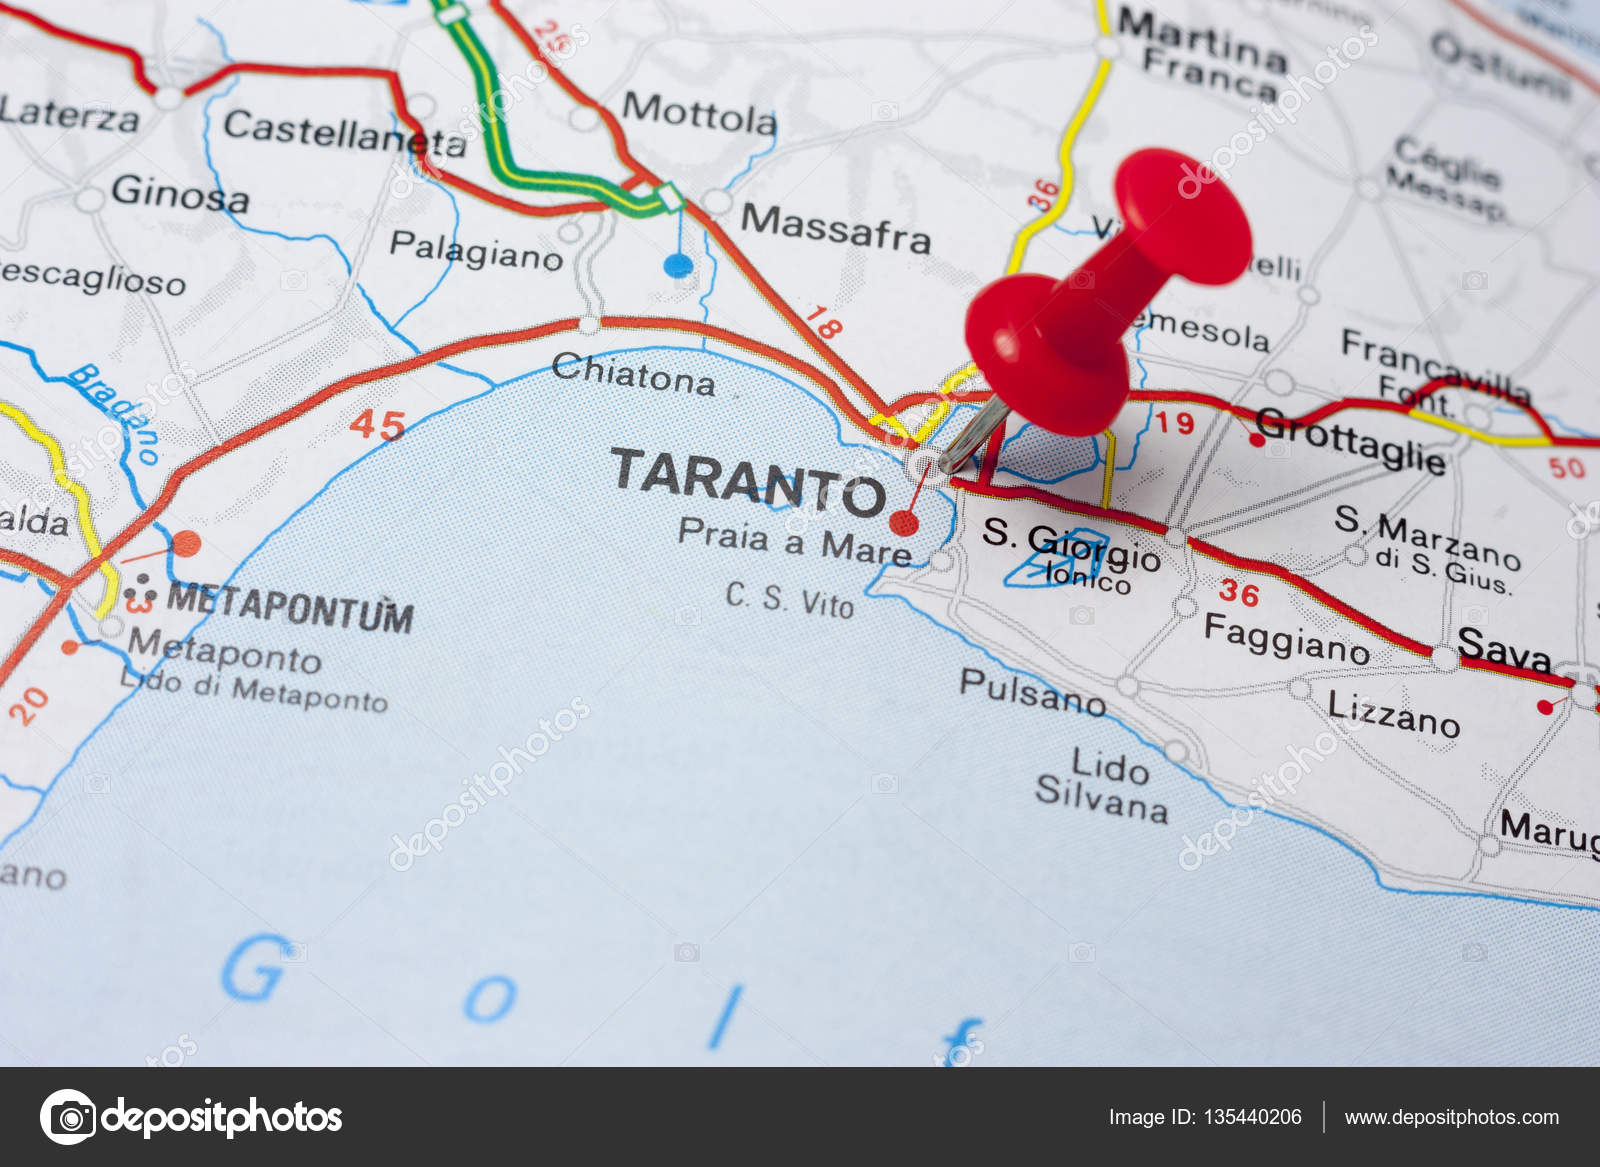 Taranto Italy On A Map Stock Photo maior 135440206